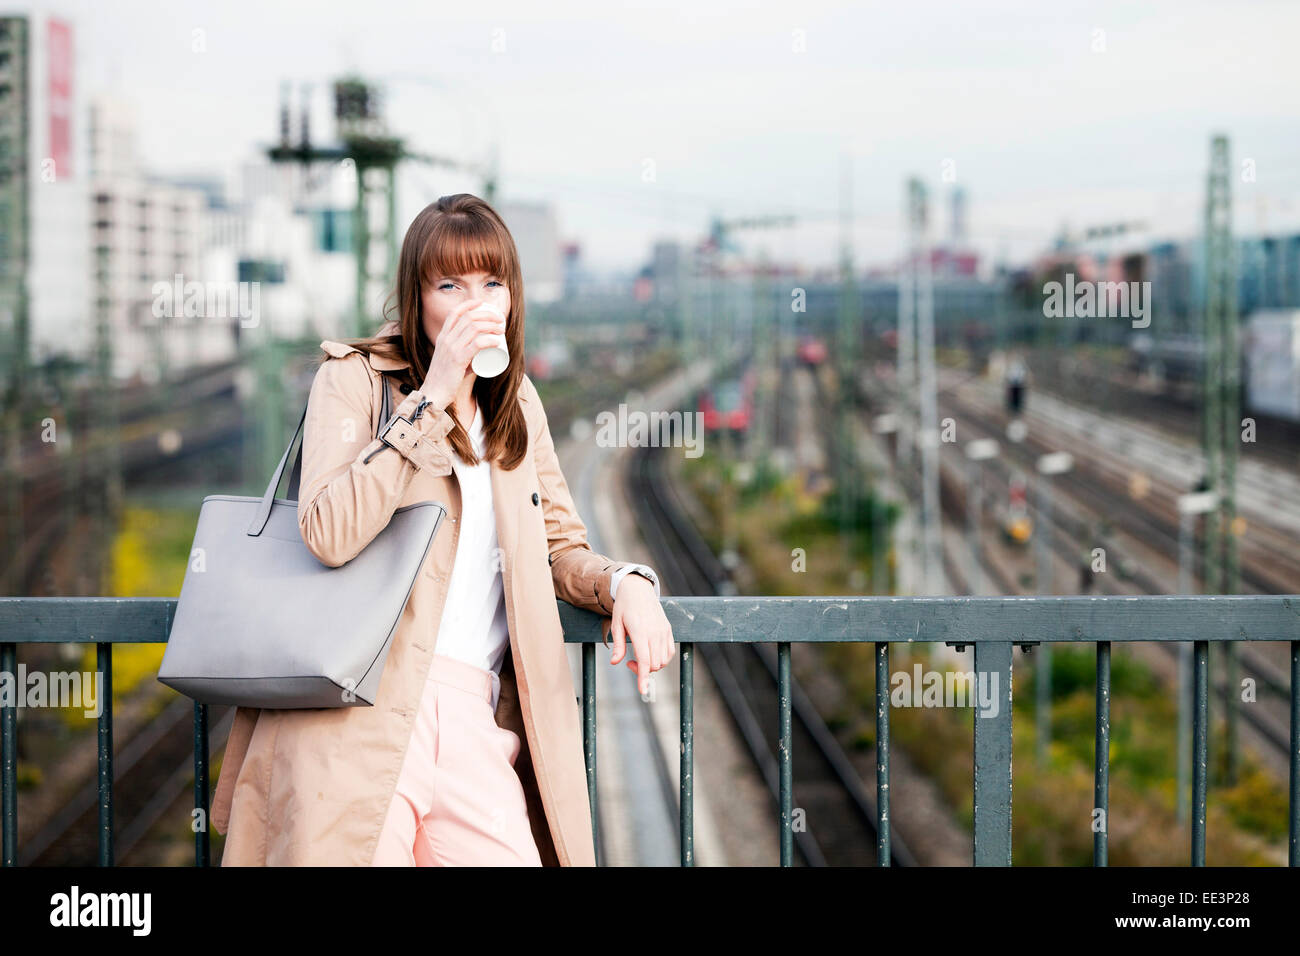 Young woman drinking coffee outdoors, Munich, Bavaria, Germany - Stock Image